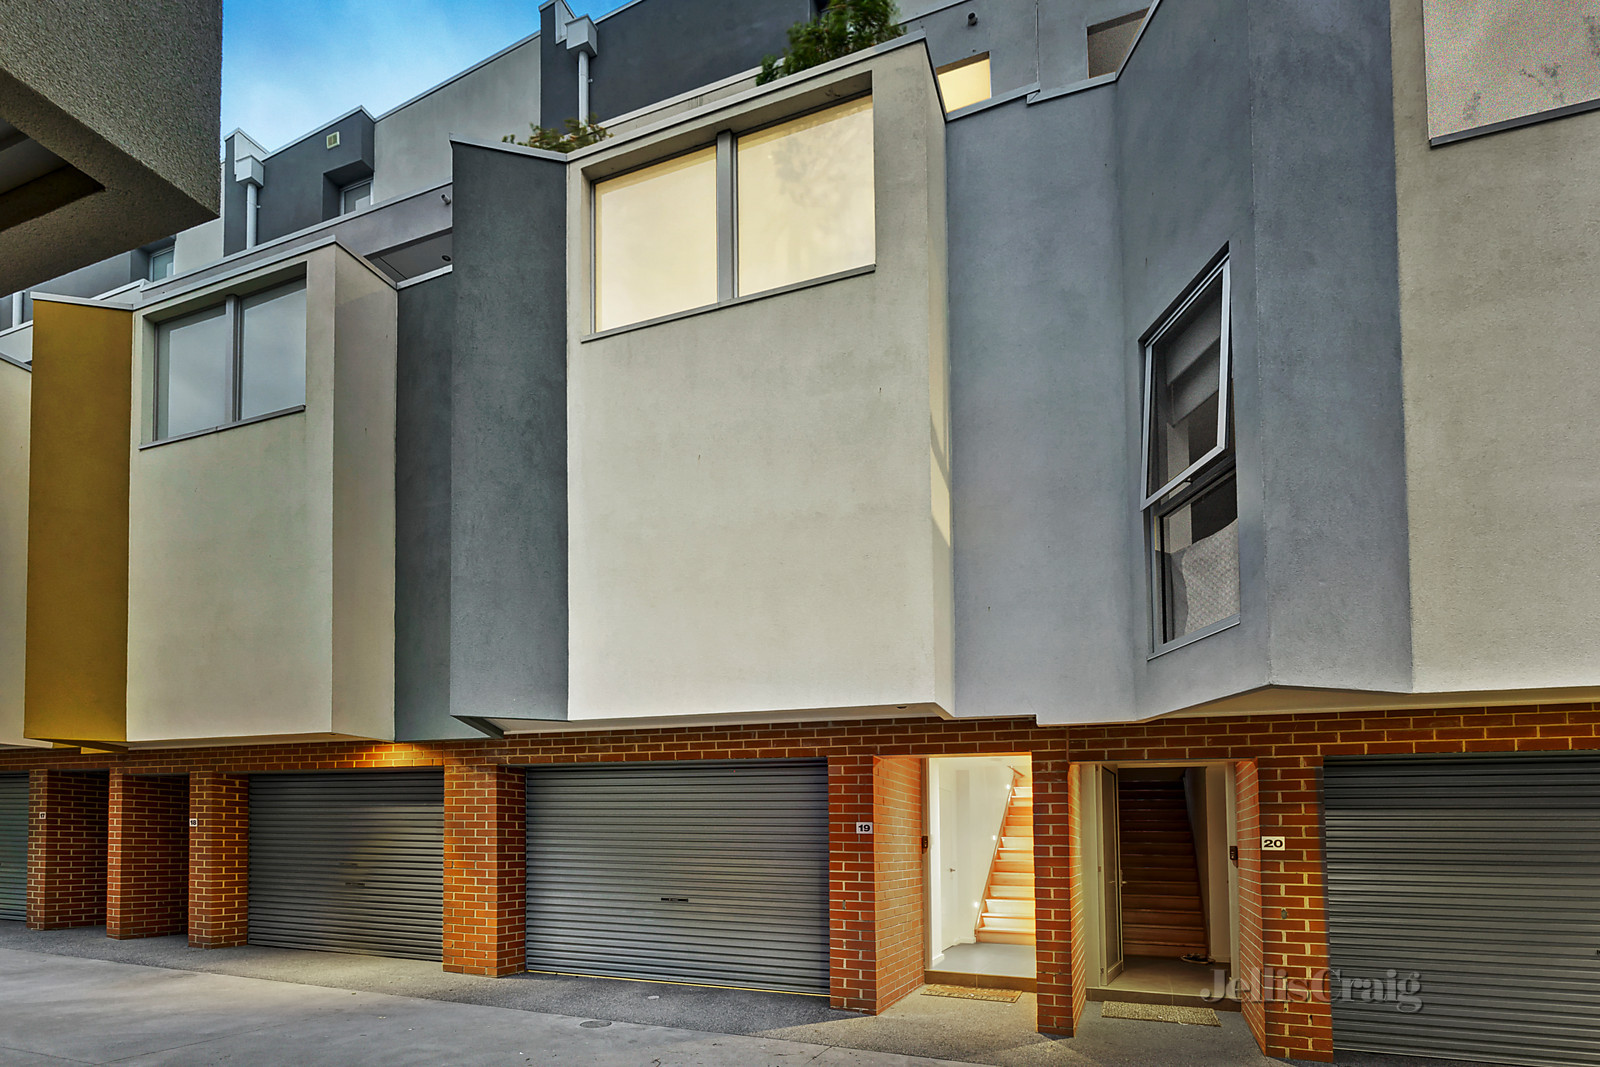 19/184 Noone Street, Clifton Hill  - Print Image 1